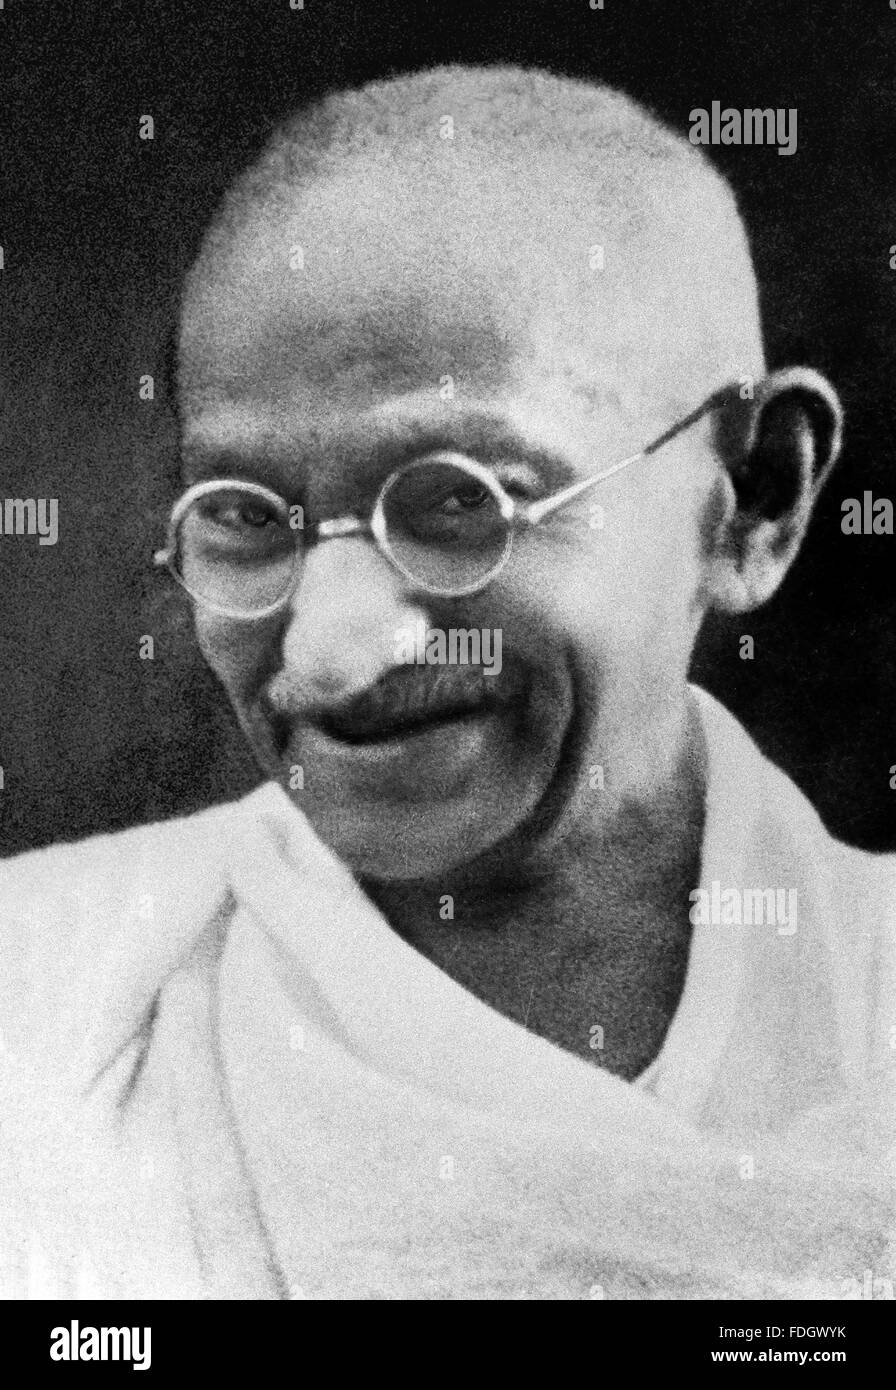 Mahatma Gandhi. Portrait of Mohandas Karamchand Gandhi, widely known as Mahatma Gandhi. Photograph most probably - Stock Image